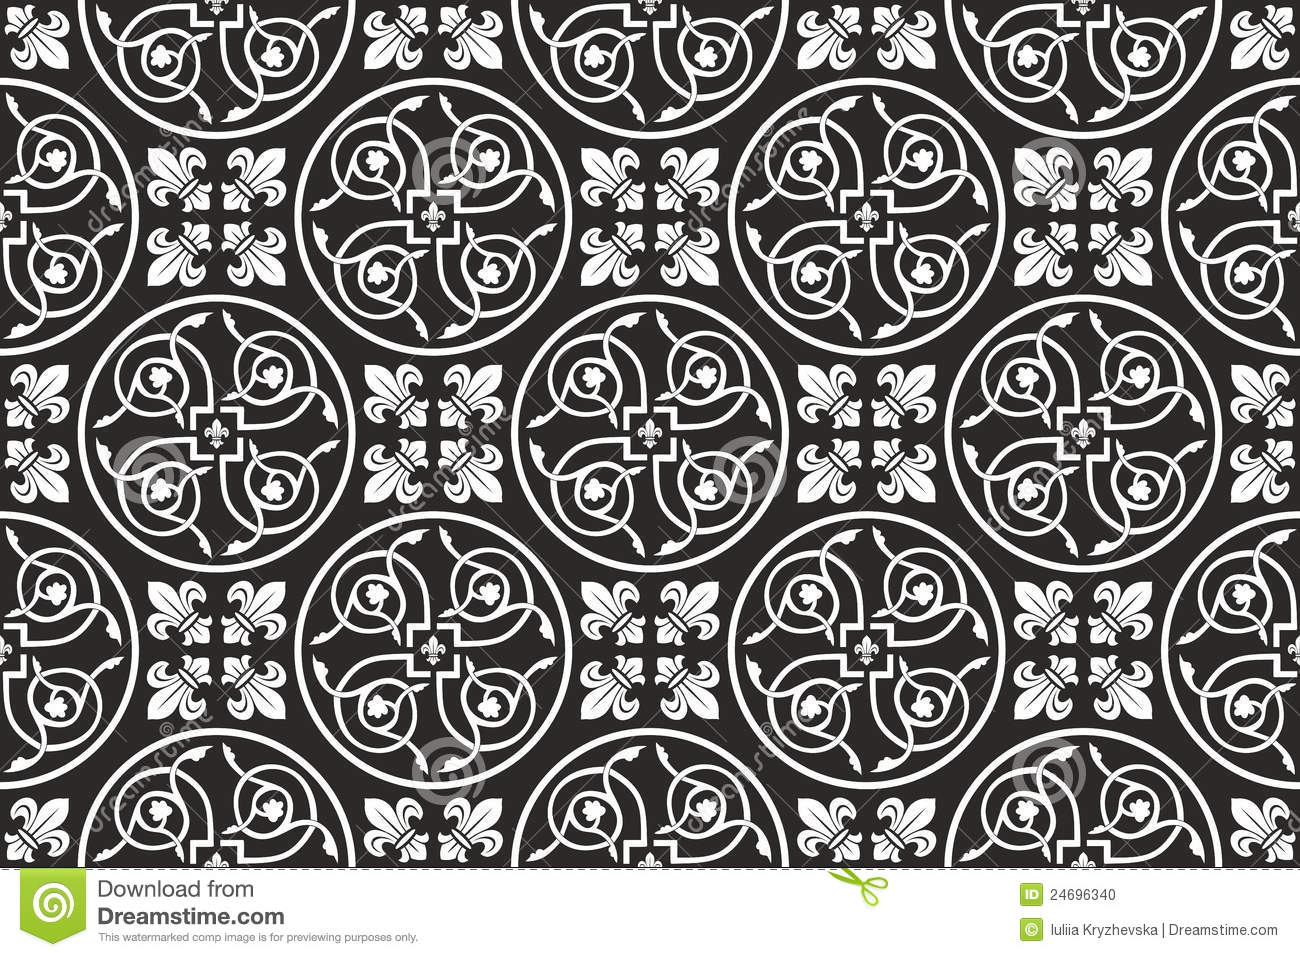 Black-and-white seamless gothic floral pattern with fleur-de-lis    Gothic Floral Pattern